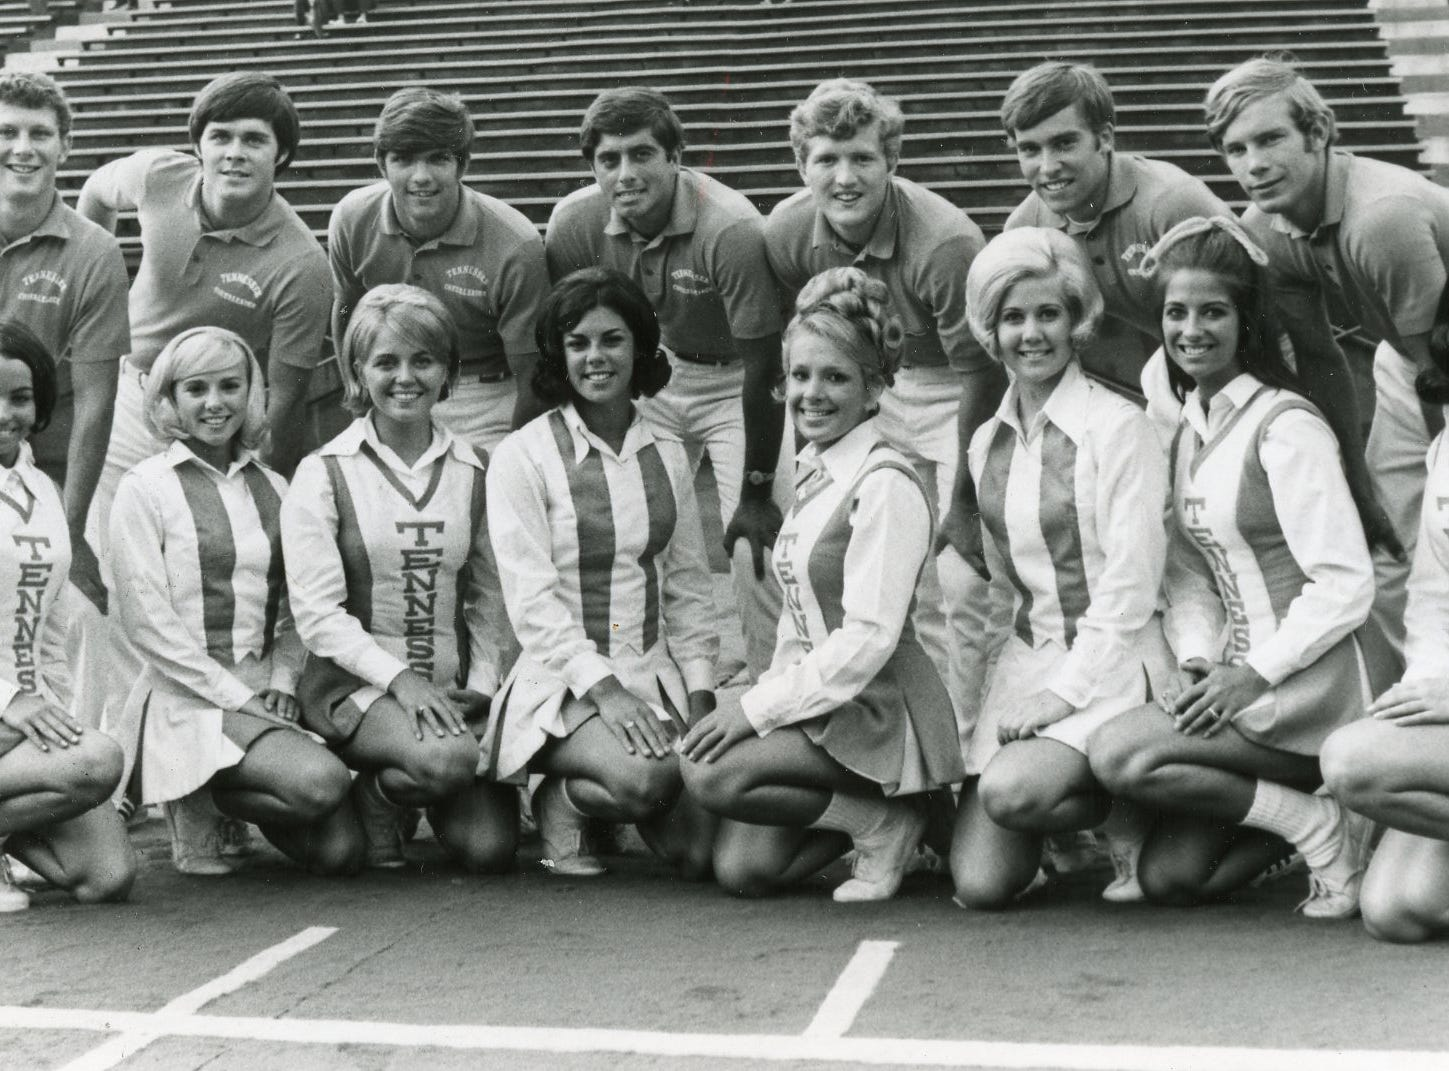 Members of the 1970 UT cheer squad include (front) Amy McClain, Pat Green, Betsy Minnis, Sharon Signaigo, Nancy Gritzner, Vicki Brummett, Jan Campbell, Lyn Eoff; (back) Joe Washington, Mike Carpenter, Bert Hewgley, Tony Rose, Richard Gardner, Jim Strang and Larry Waddington.